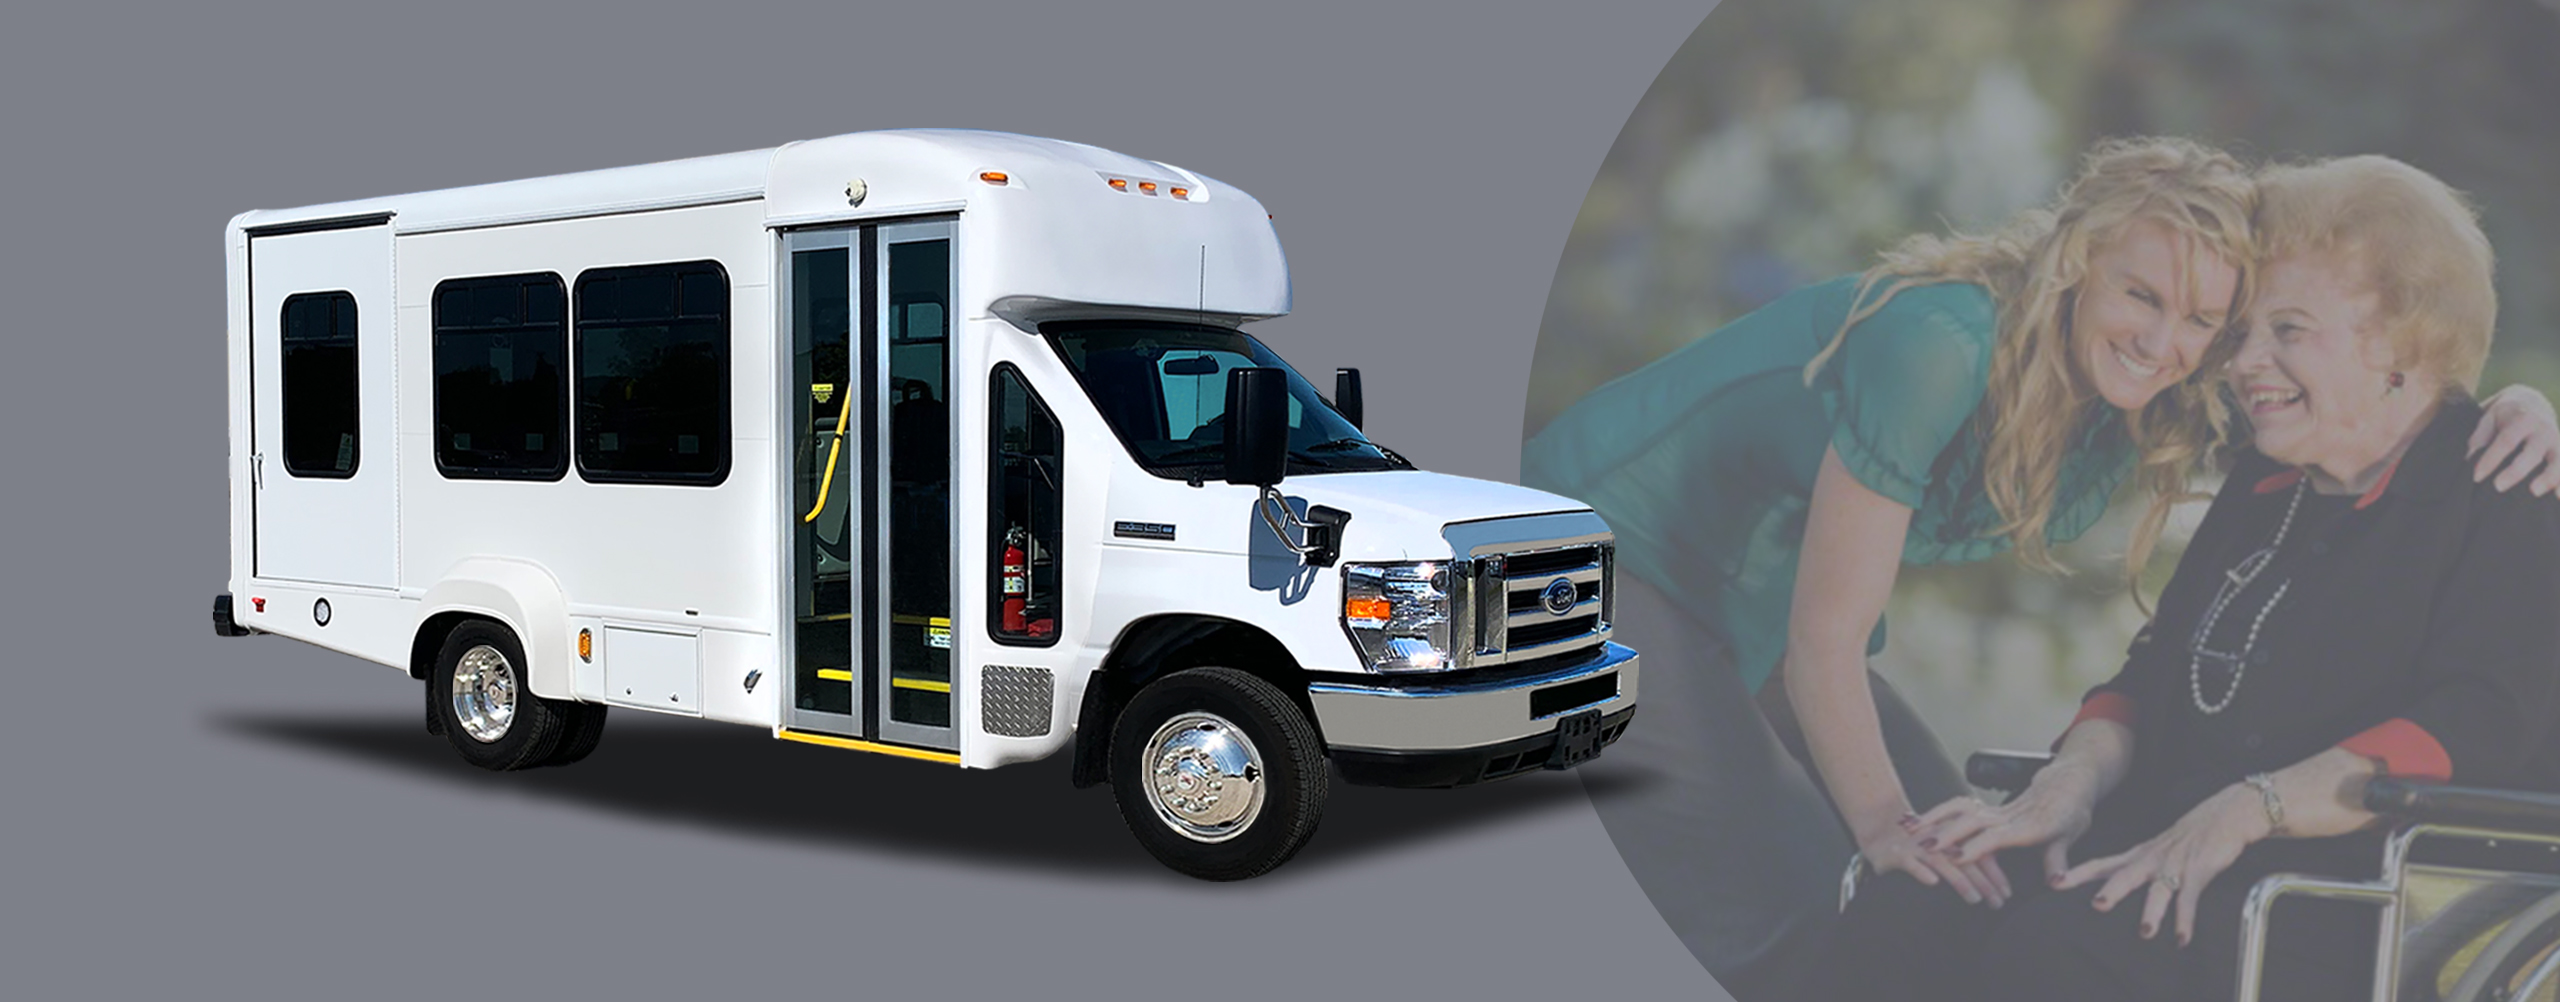 Home | StarTrans Bus - Quality without Compromise.www.startransbus.com